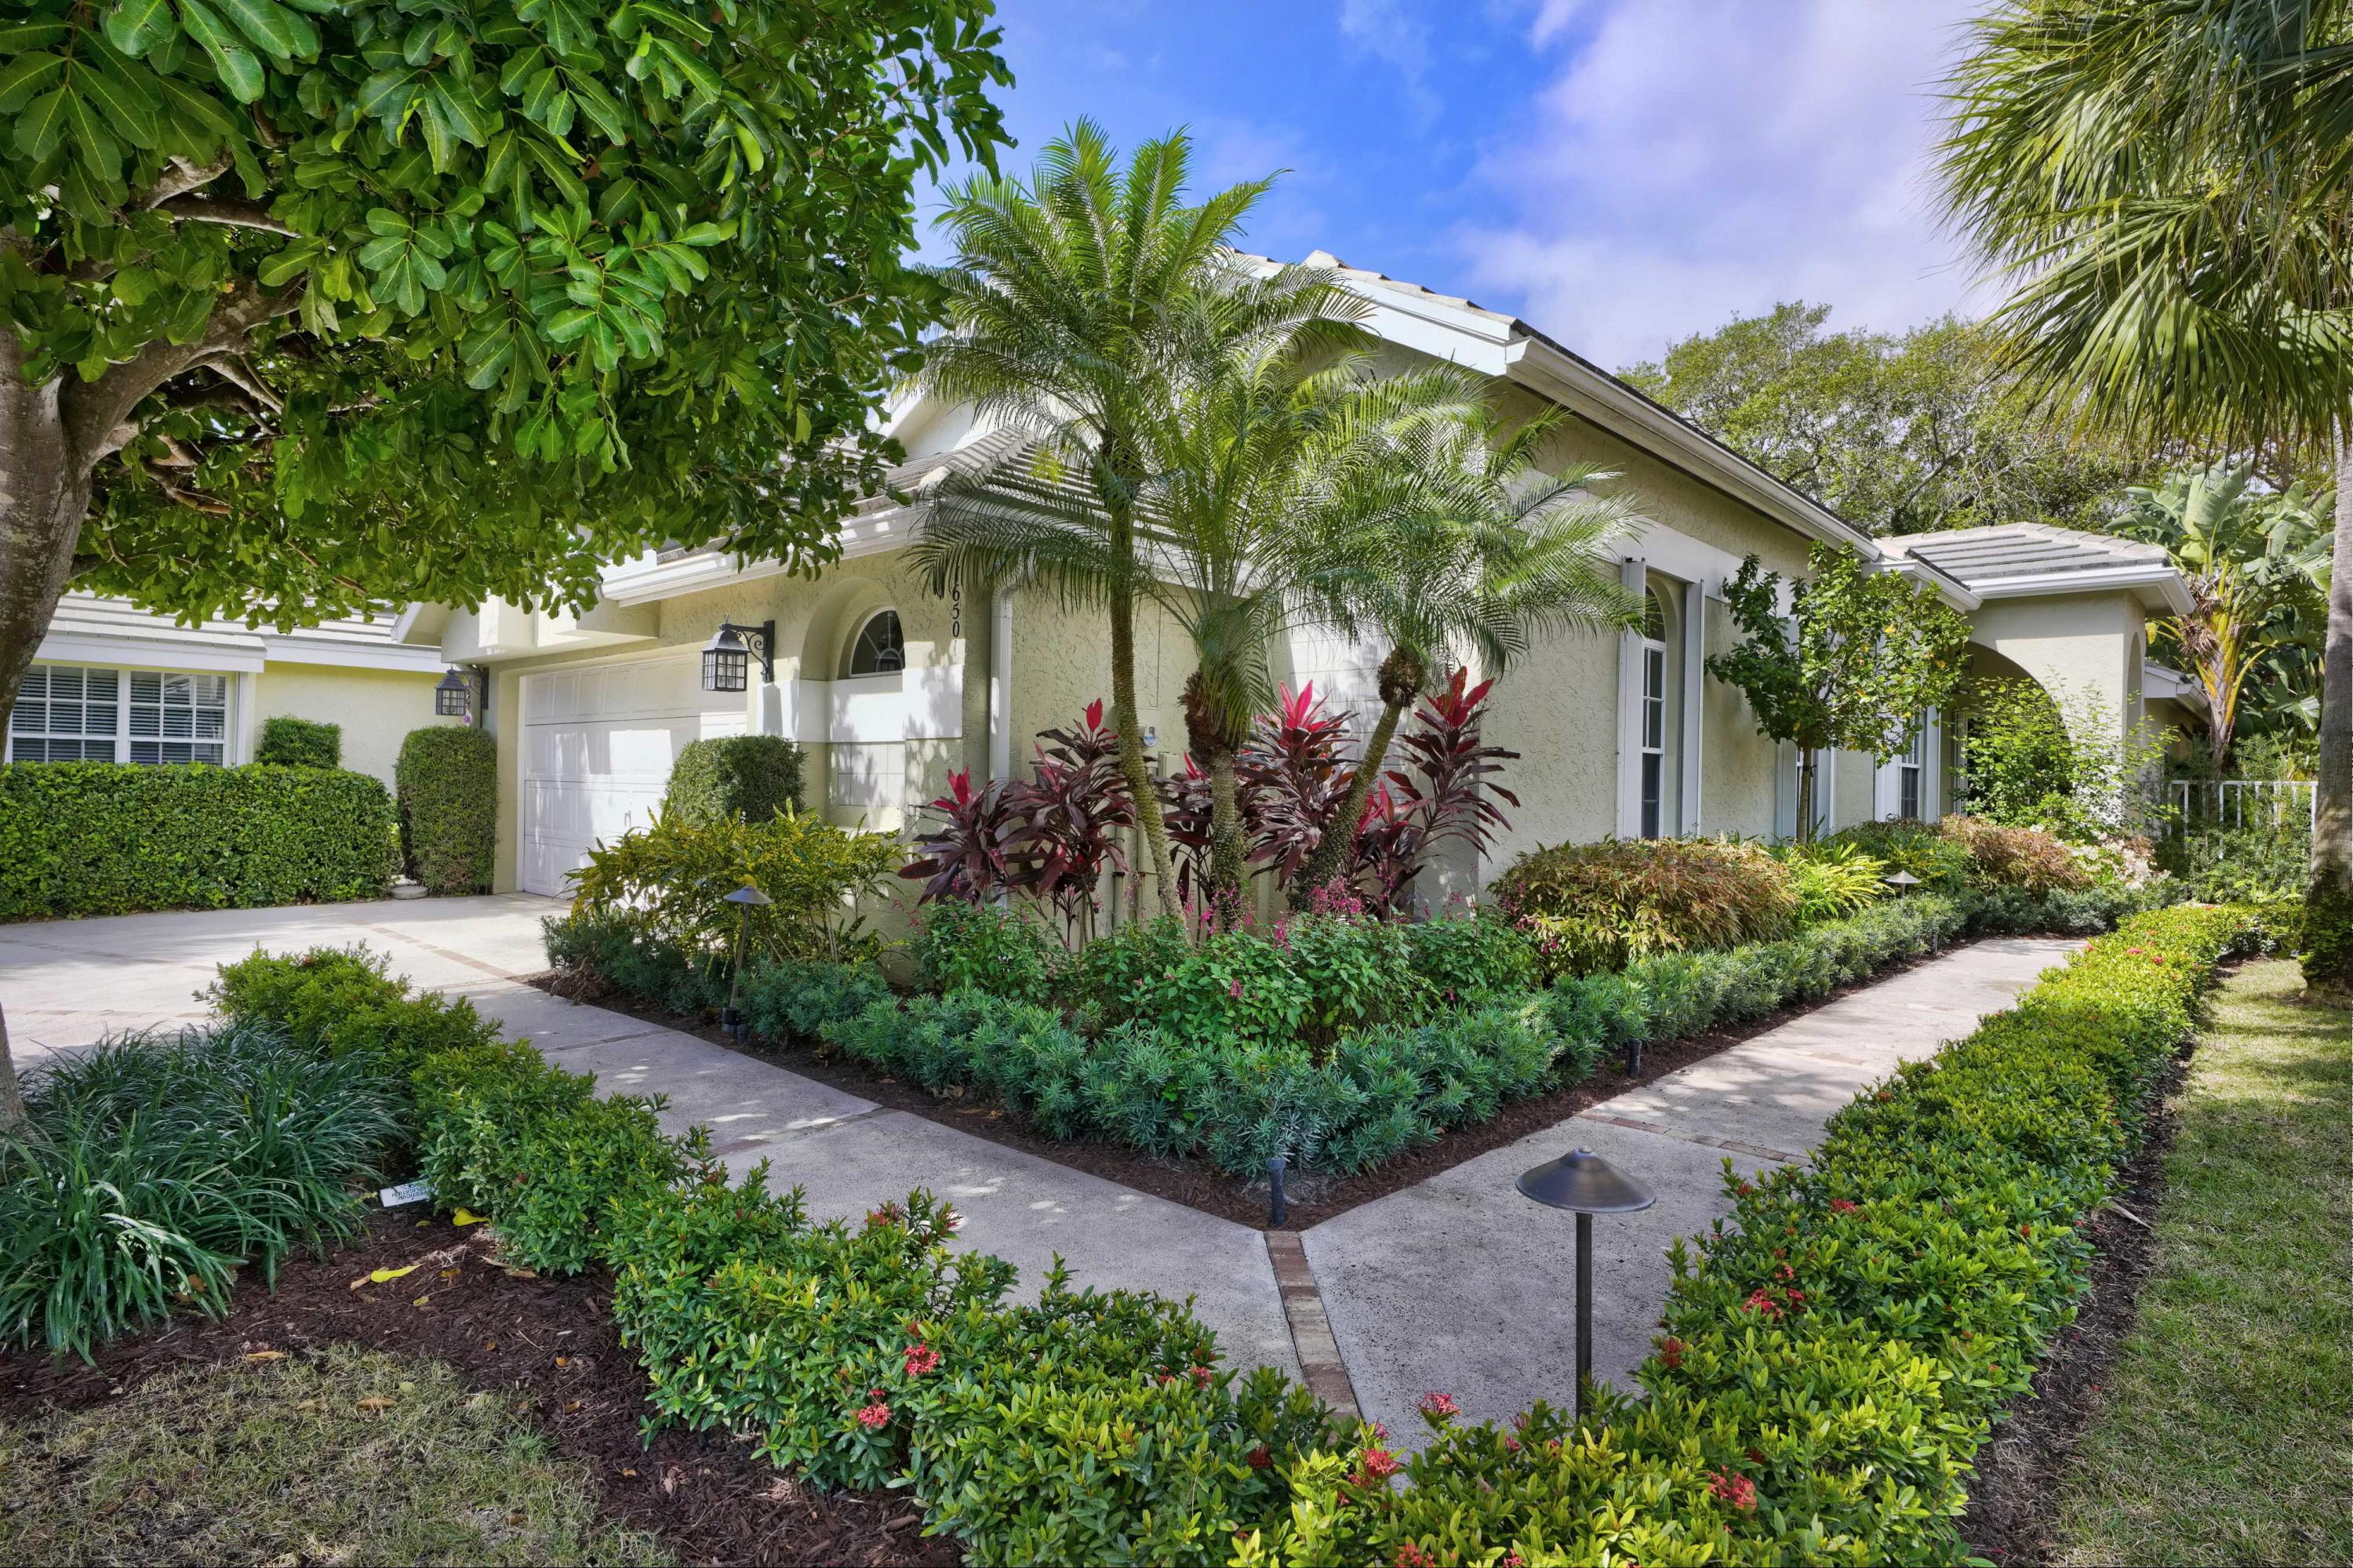 New Home for sale at 16501 Riverwind Drive in Jupiter